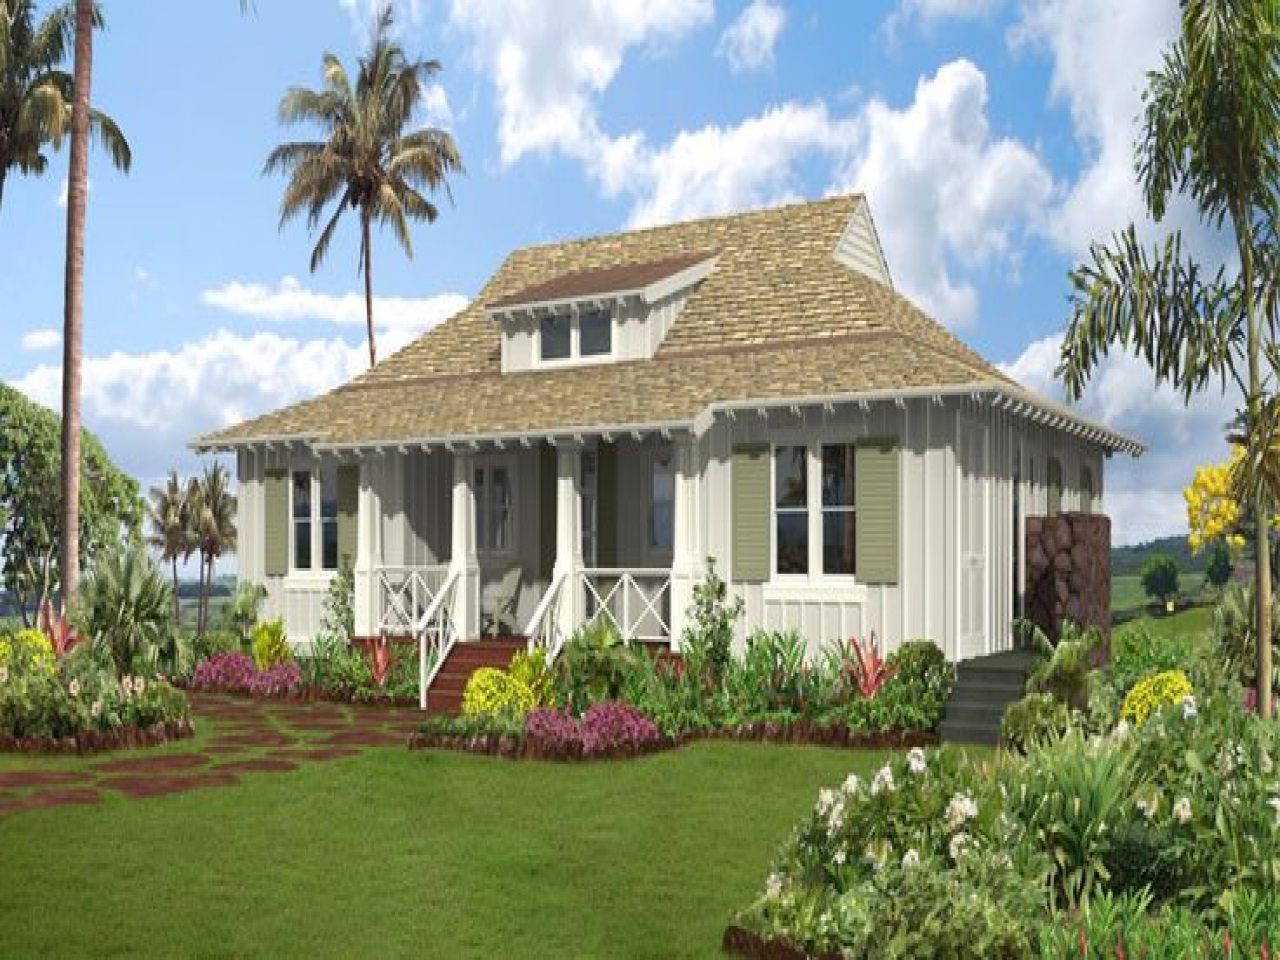 Hawaiian plantation style home plan hawaiian plantation for Hawaiian plantation architecture